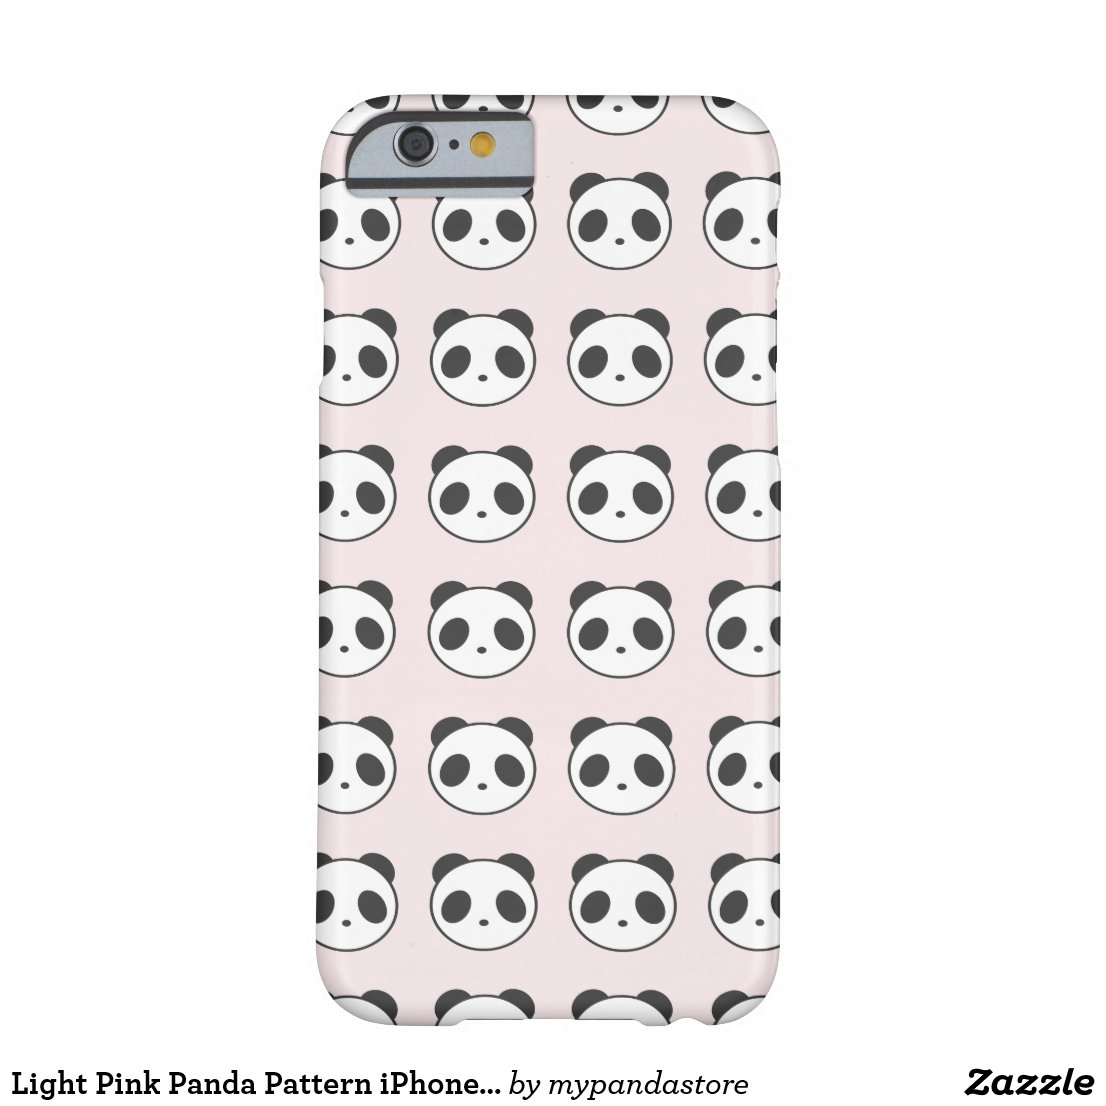 Light Pink Panda Pattern iPhone Case